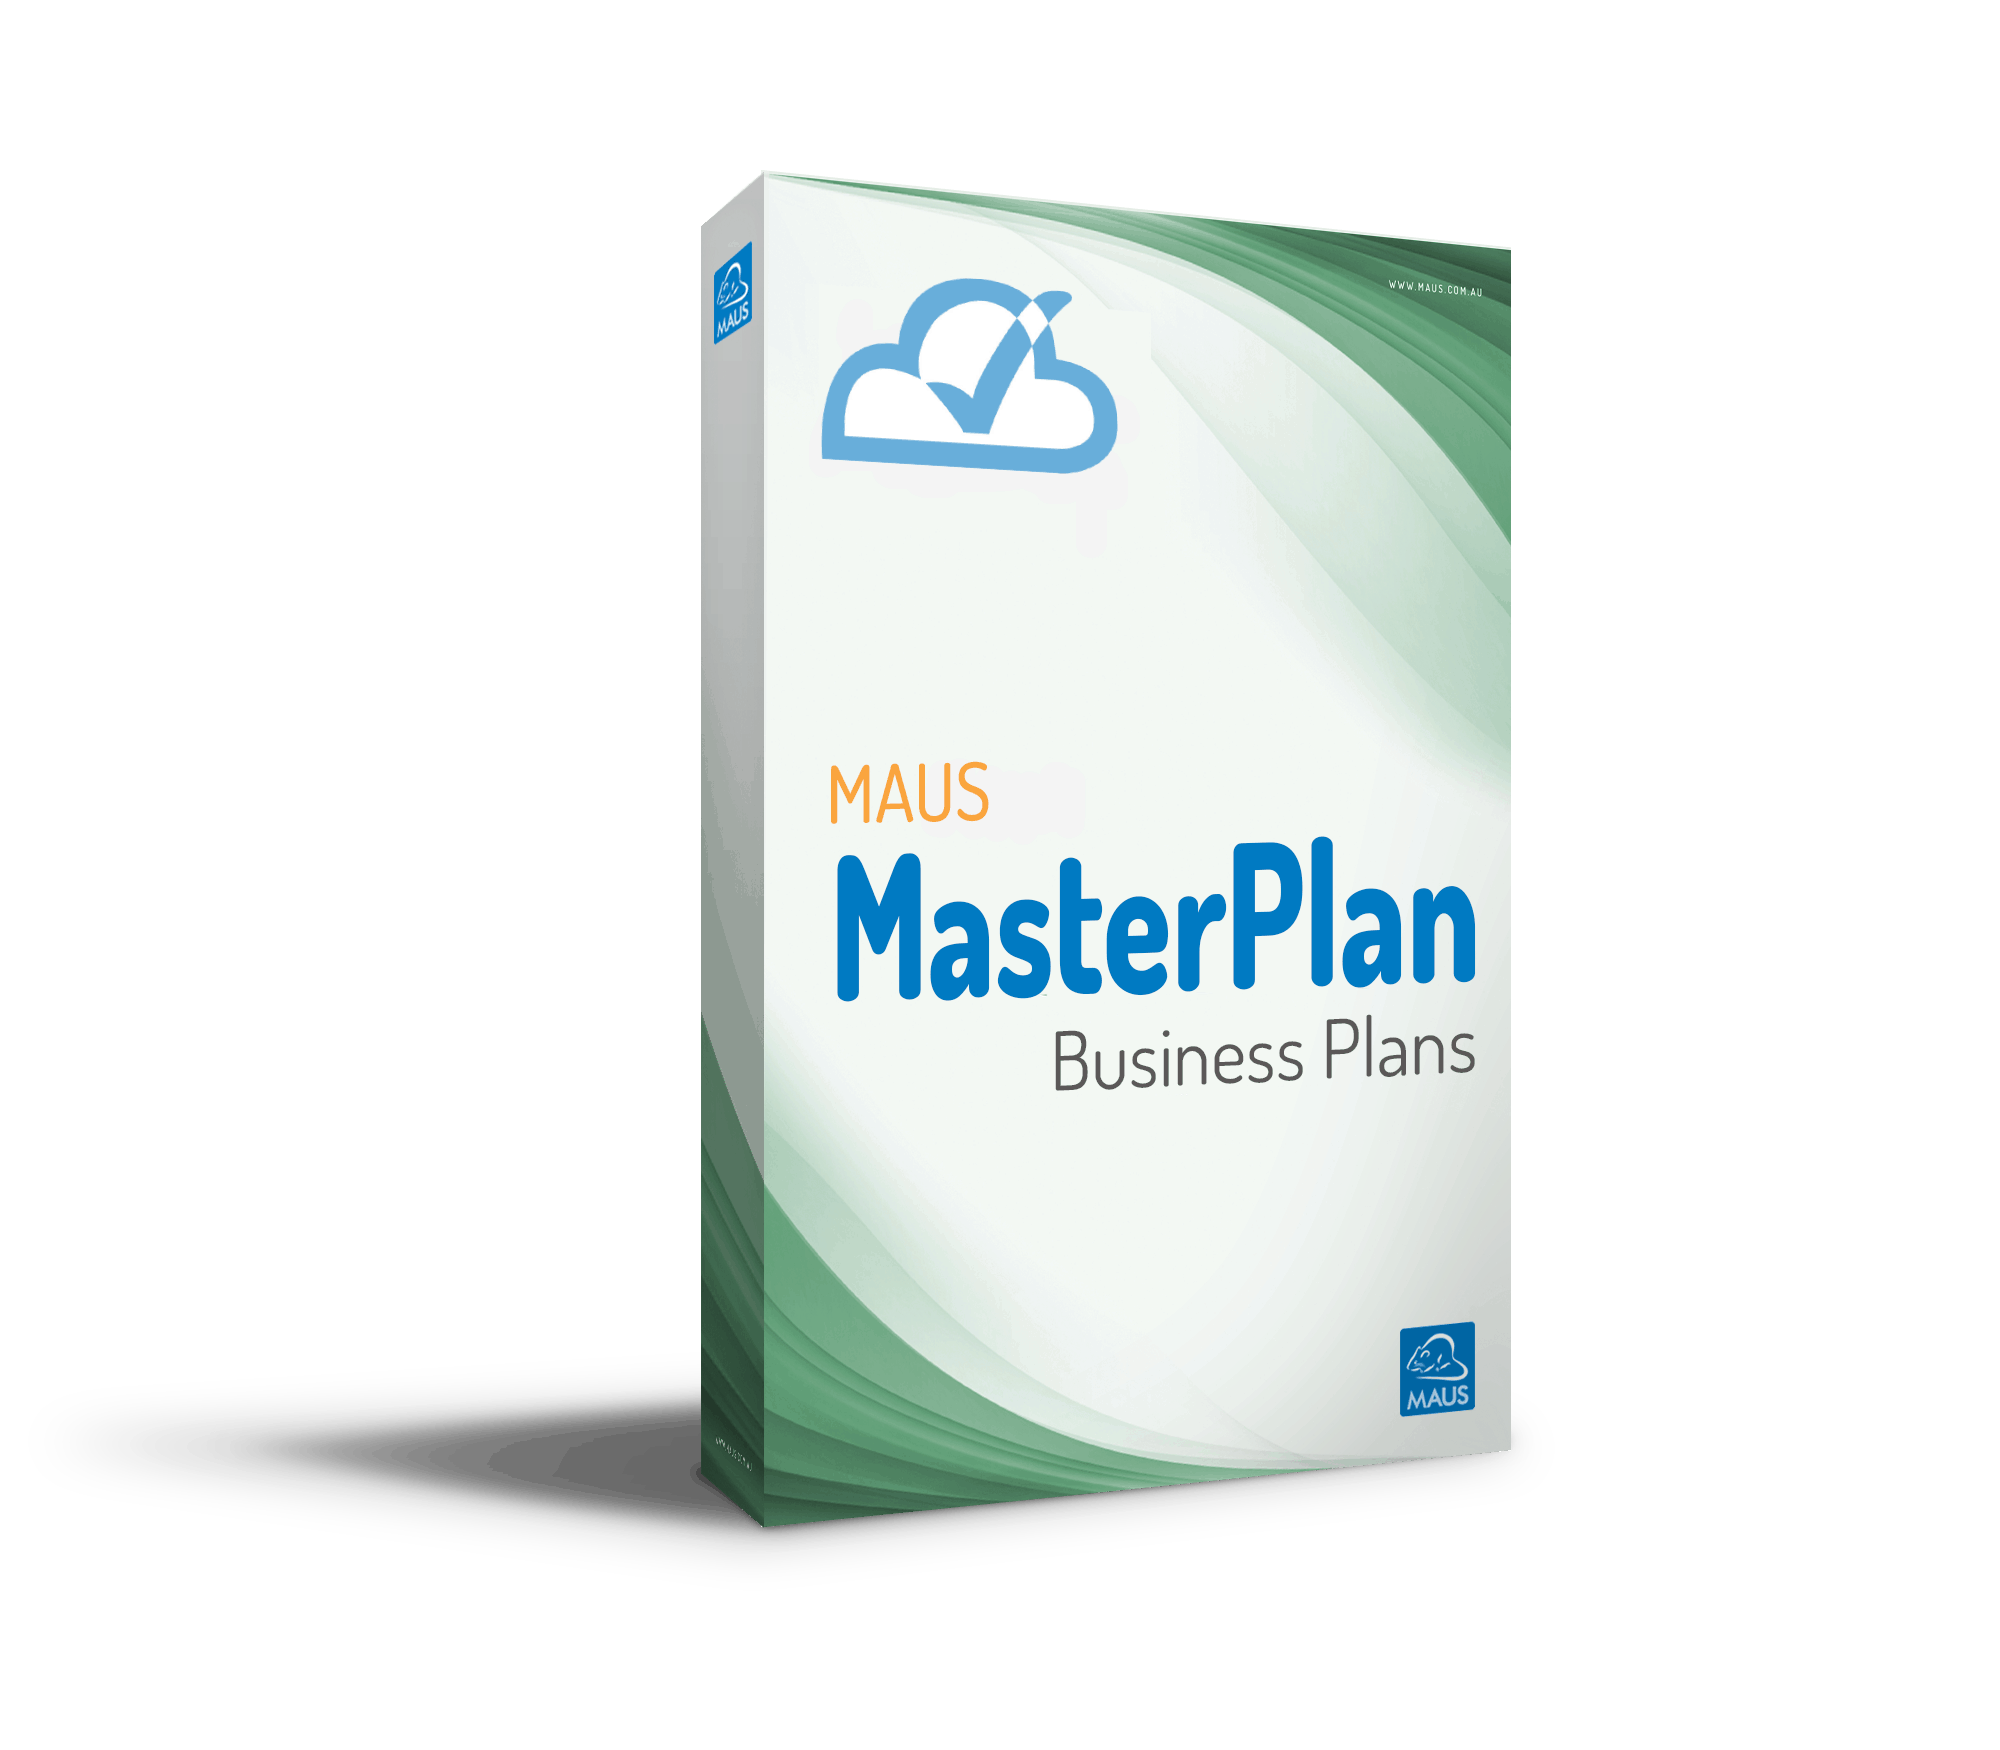 Business Planning Software